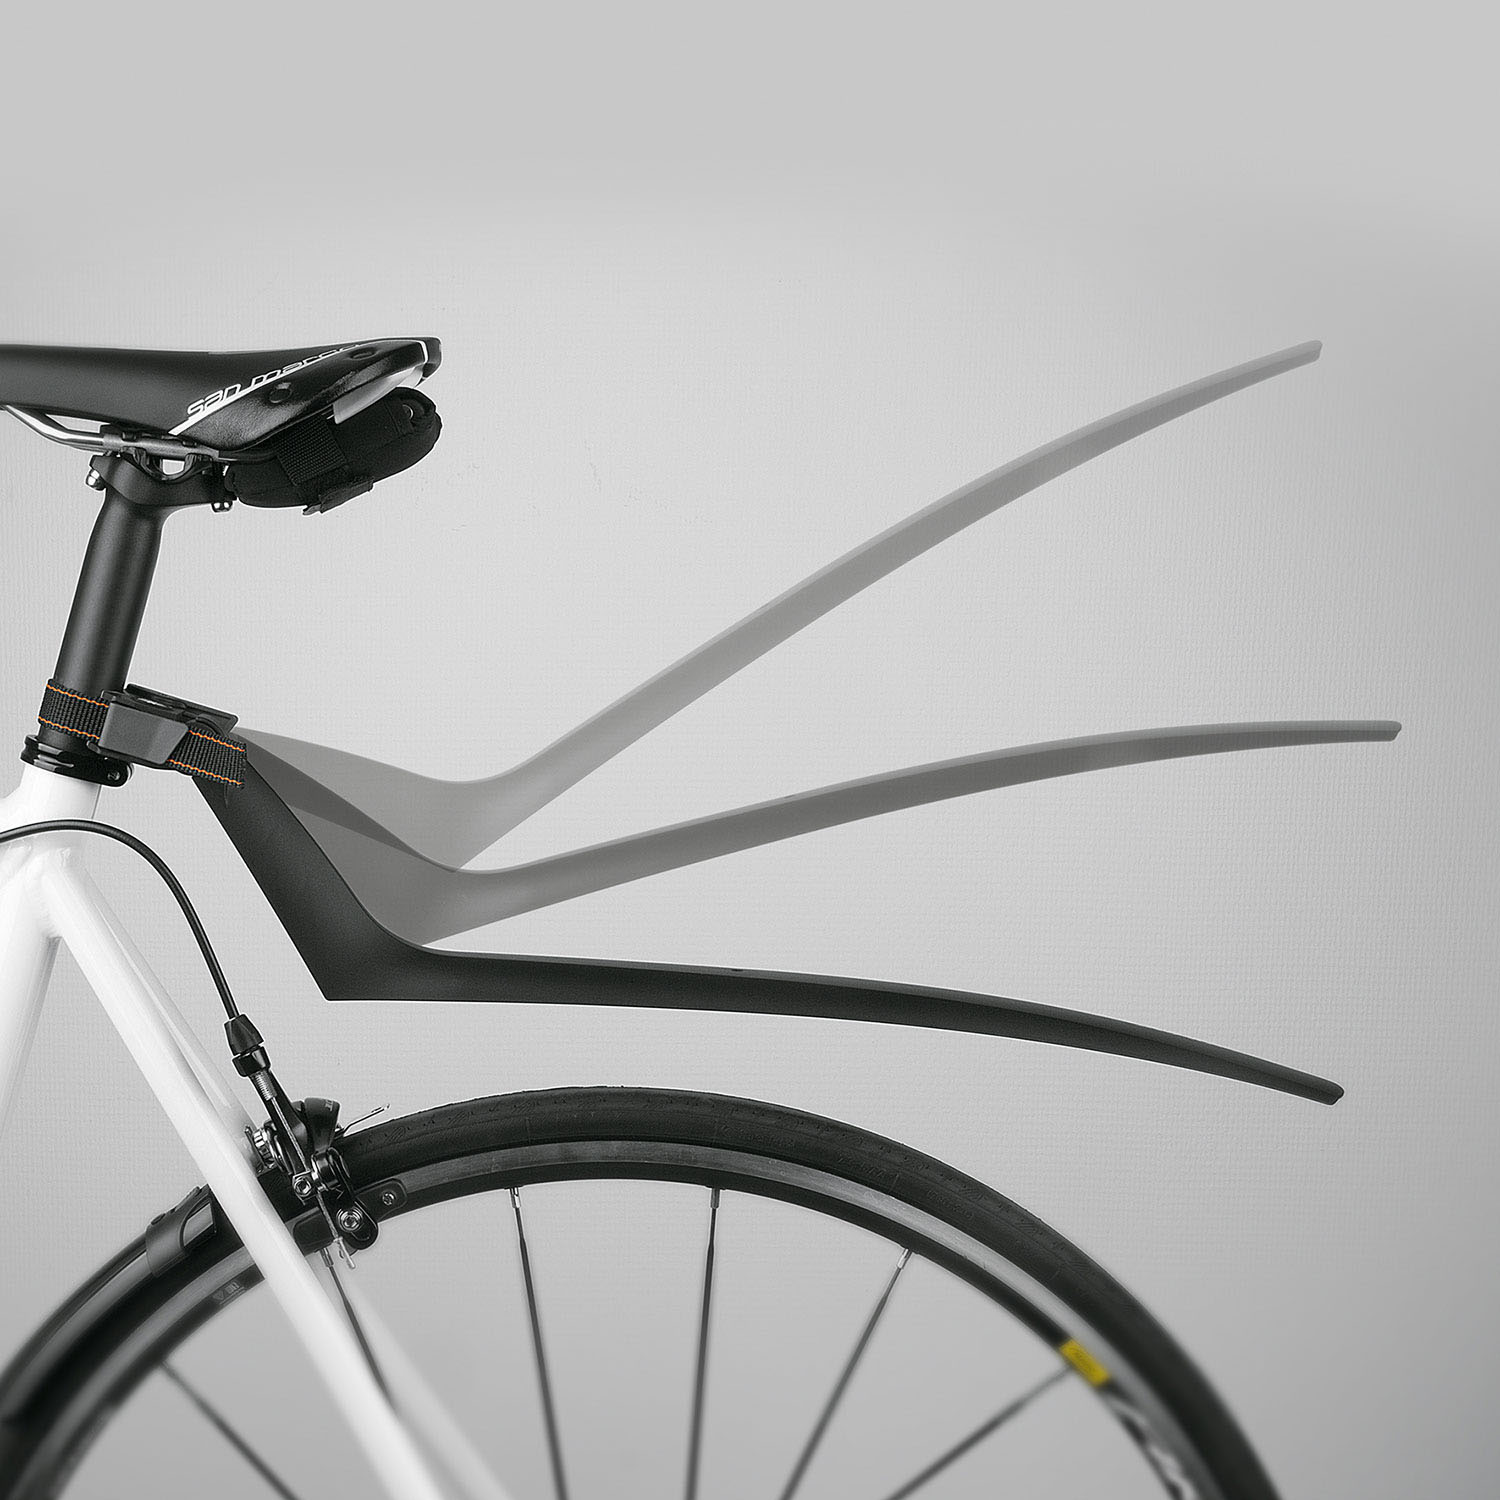 SKS S-Blade Quick Release Fixed Mudguard 4